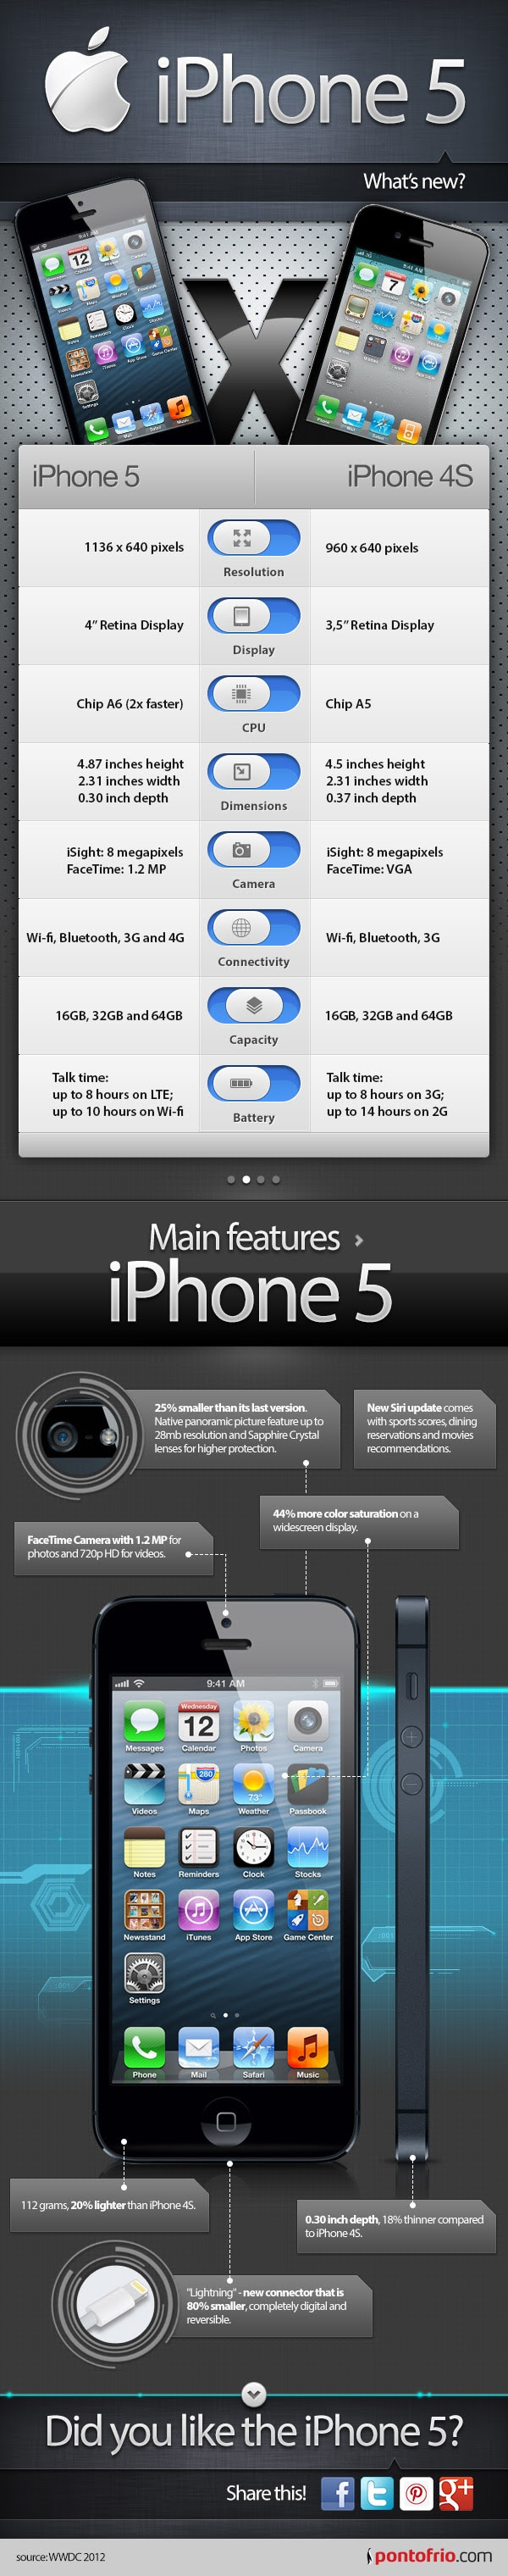 INFOGRAPHIC: iPhone 5 - Check out the new iPhone